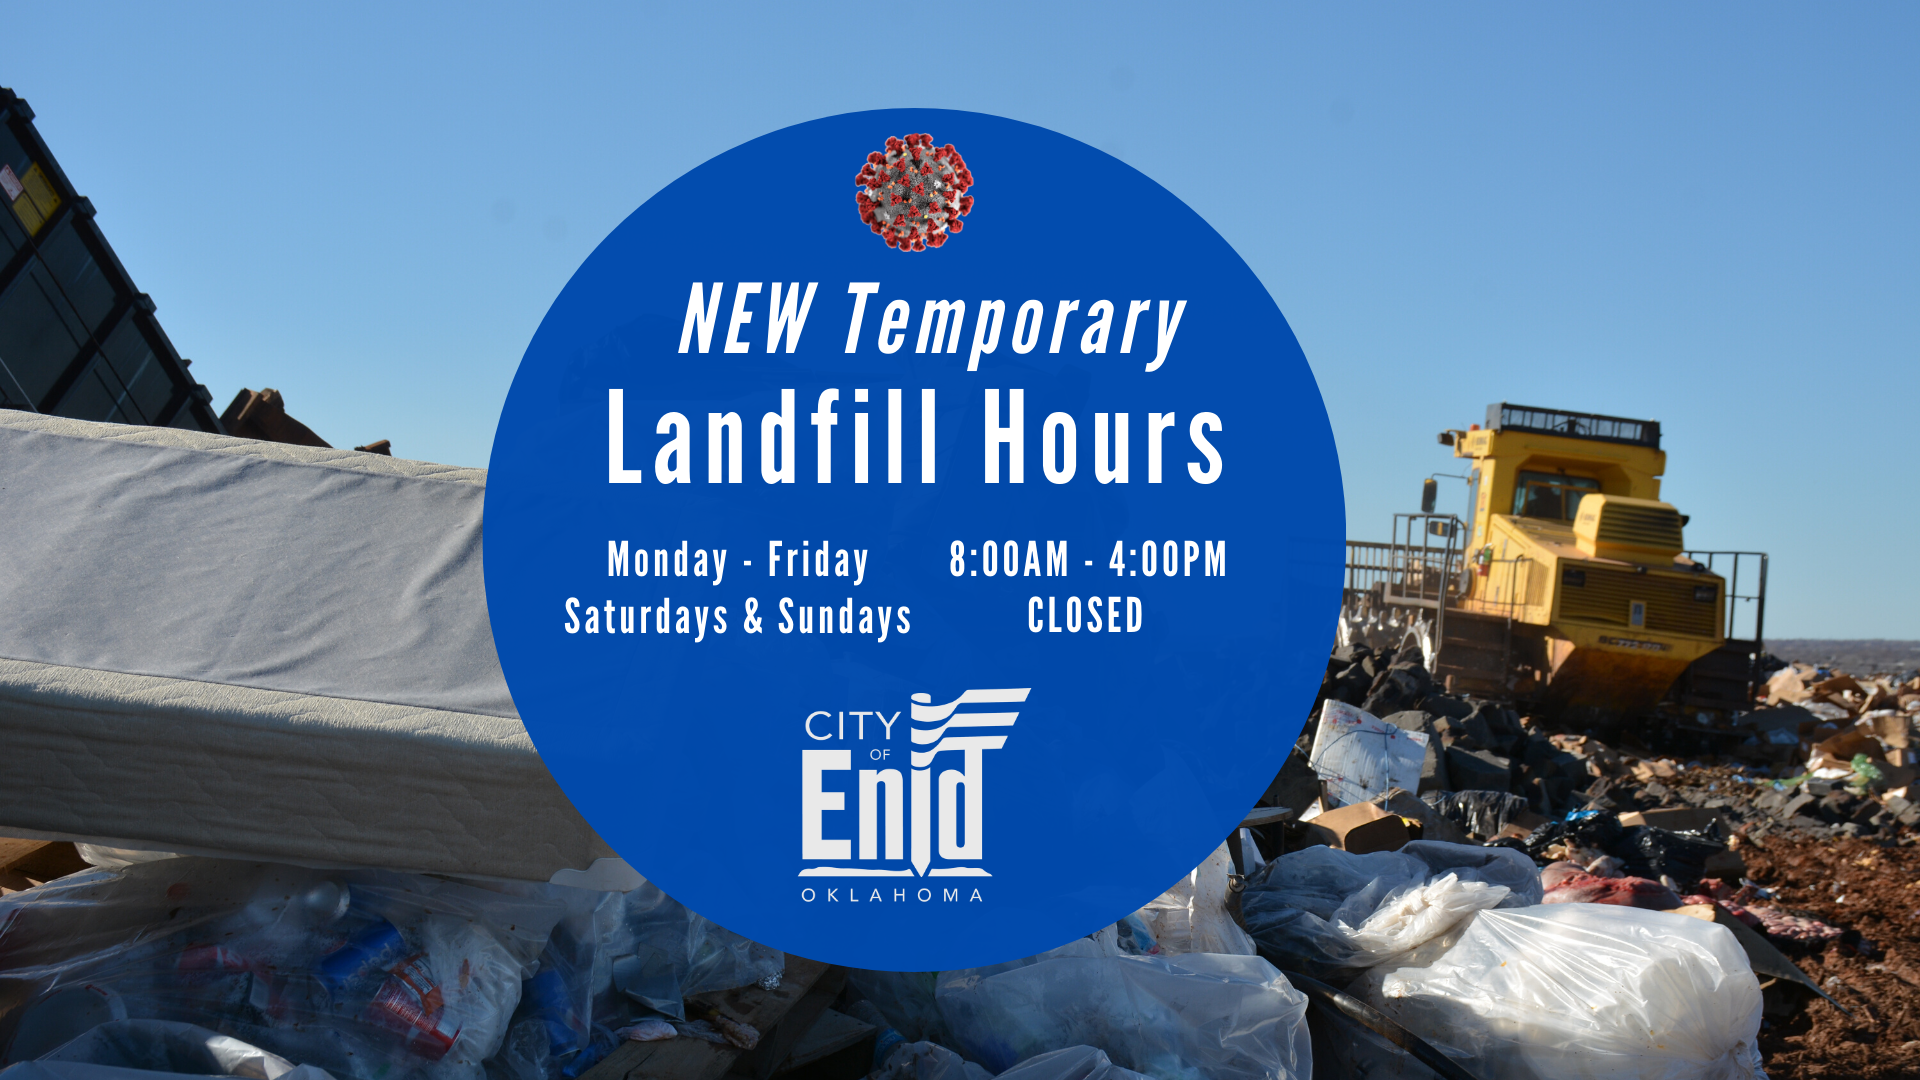 2020-03-30 Landfill Hours